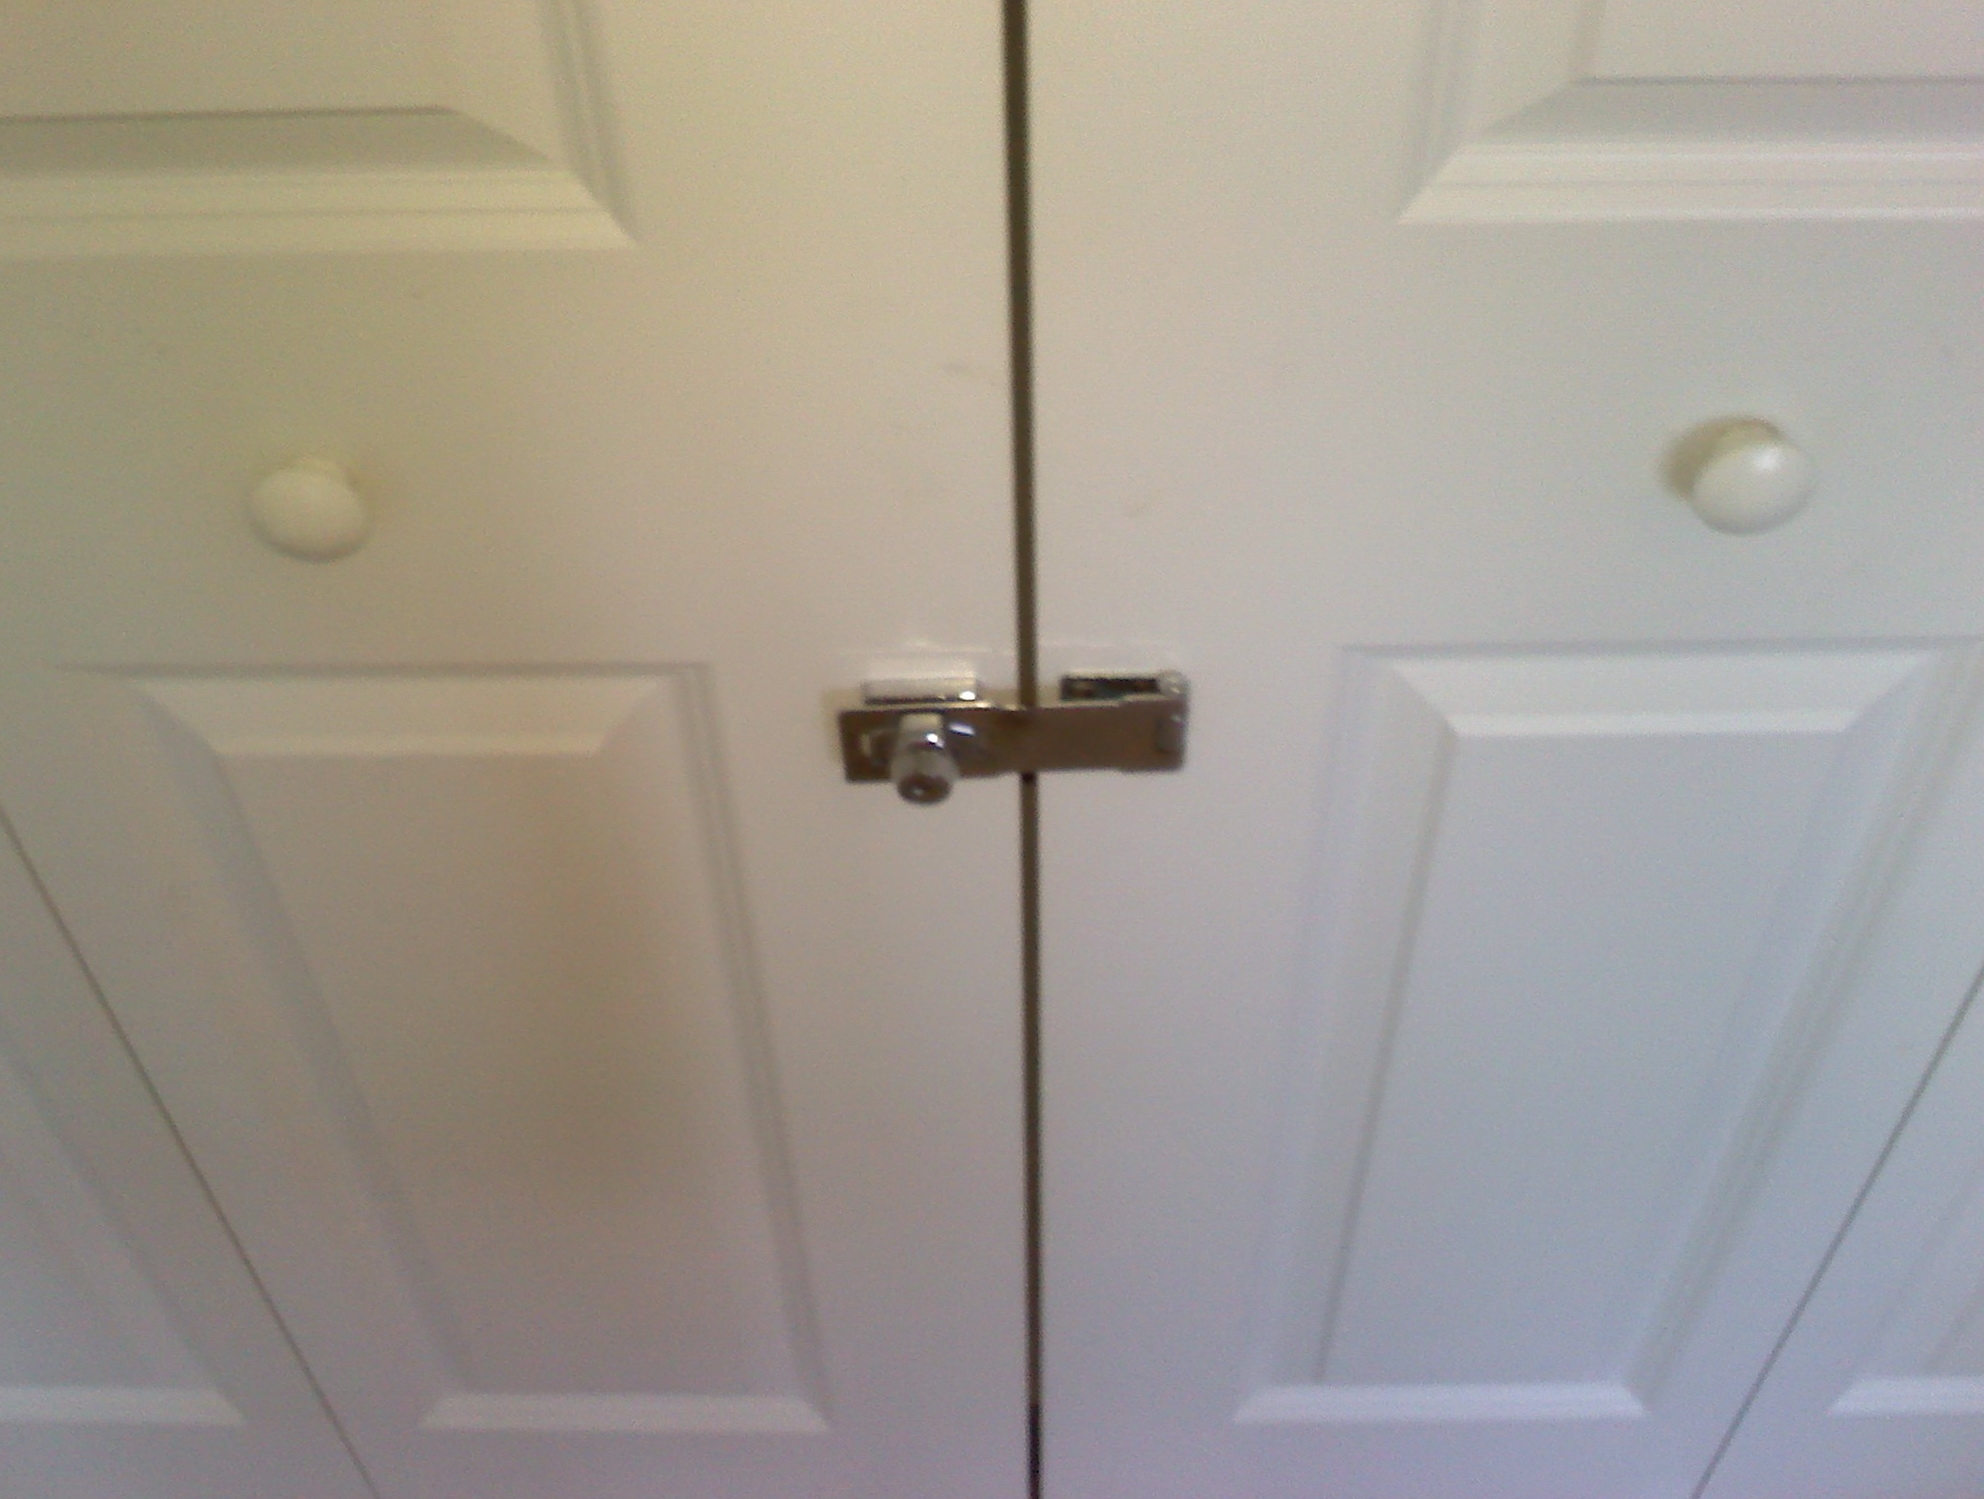 Folding Closet Doors Lock